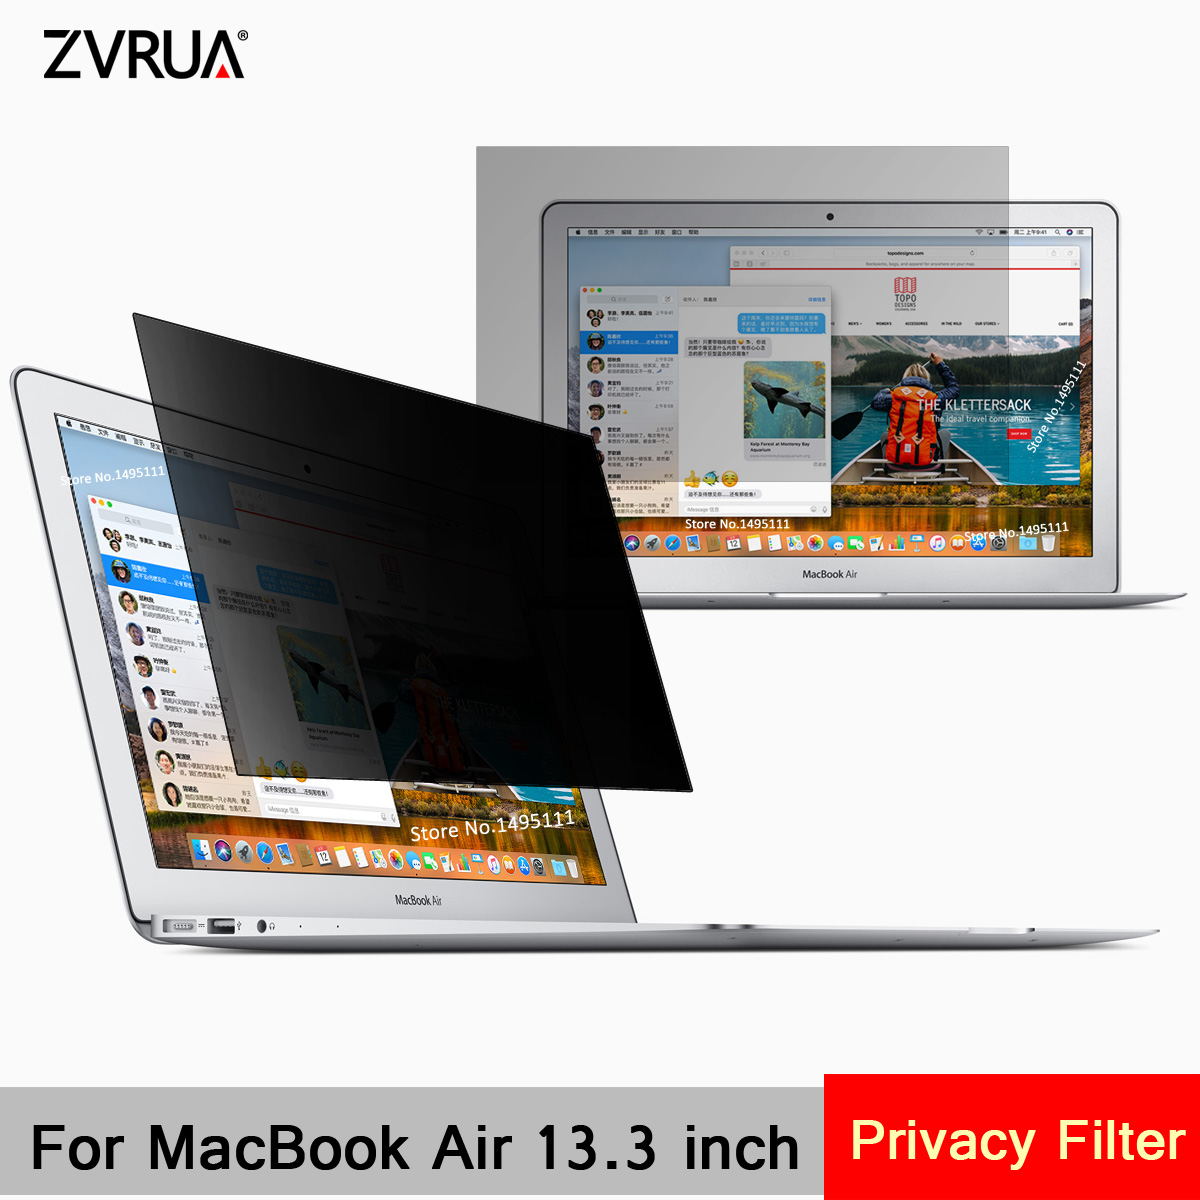 купить For Apple MacBook Air 13.3 inch (286mm*179mm) Privacy Filter Laptop Notebook Anti-glare Screen protector Protective film по цене 1482.35 рублей